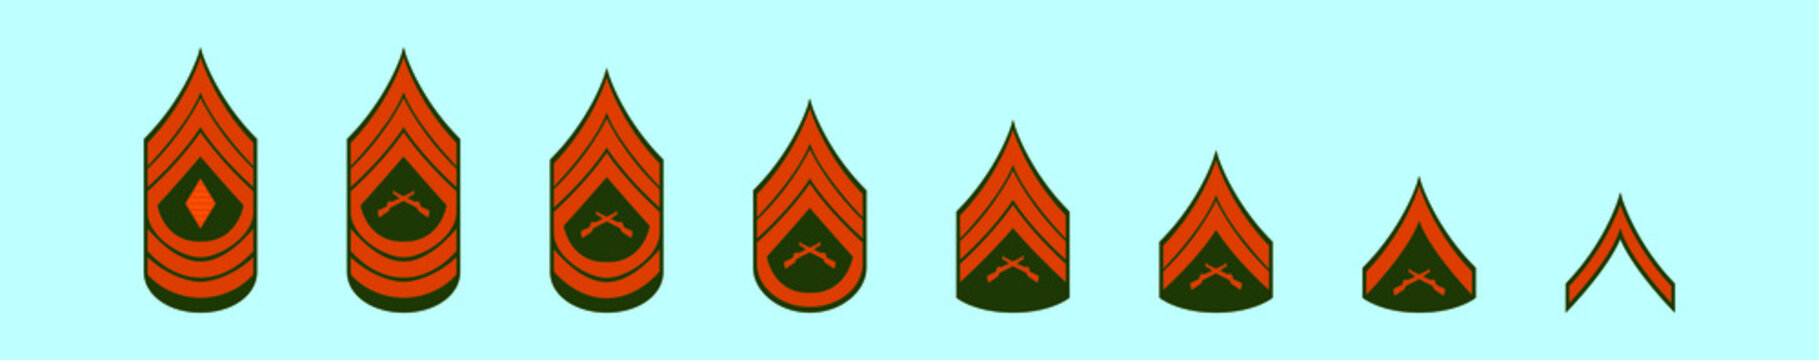 set of marine corps rank cartoon icon design template with various models. vector illustration isolated on blue background